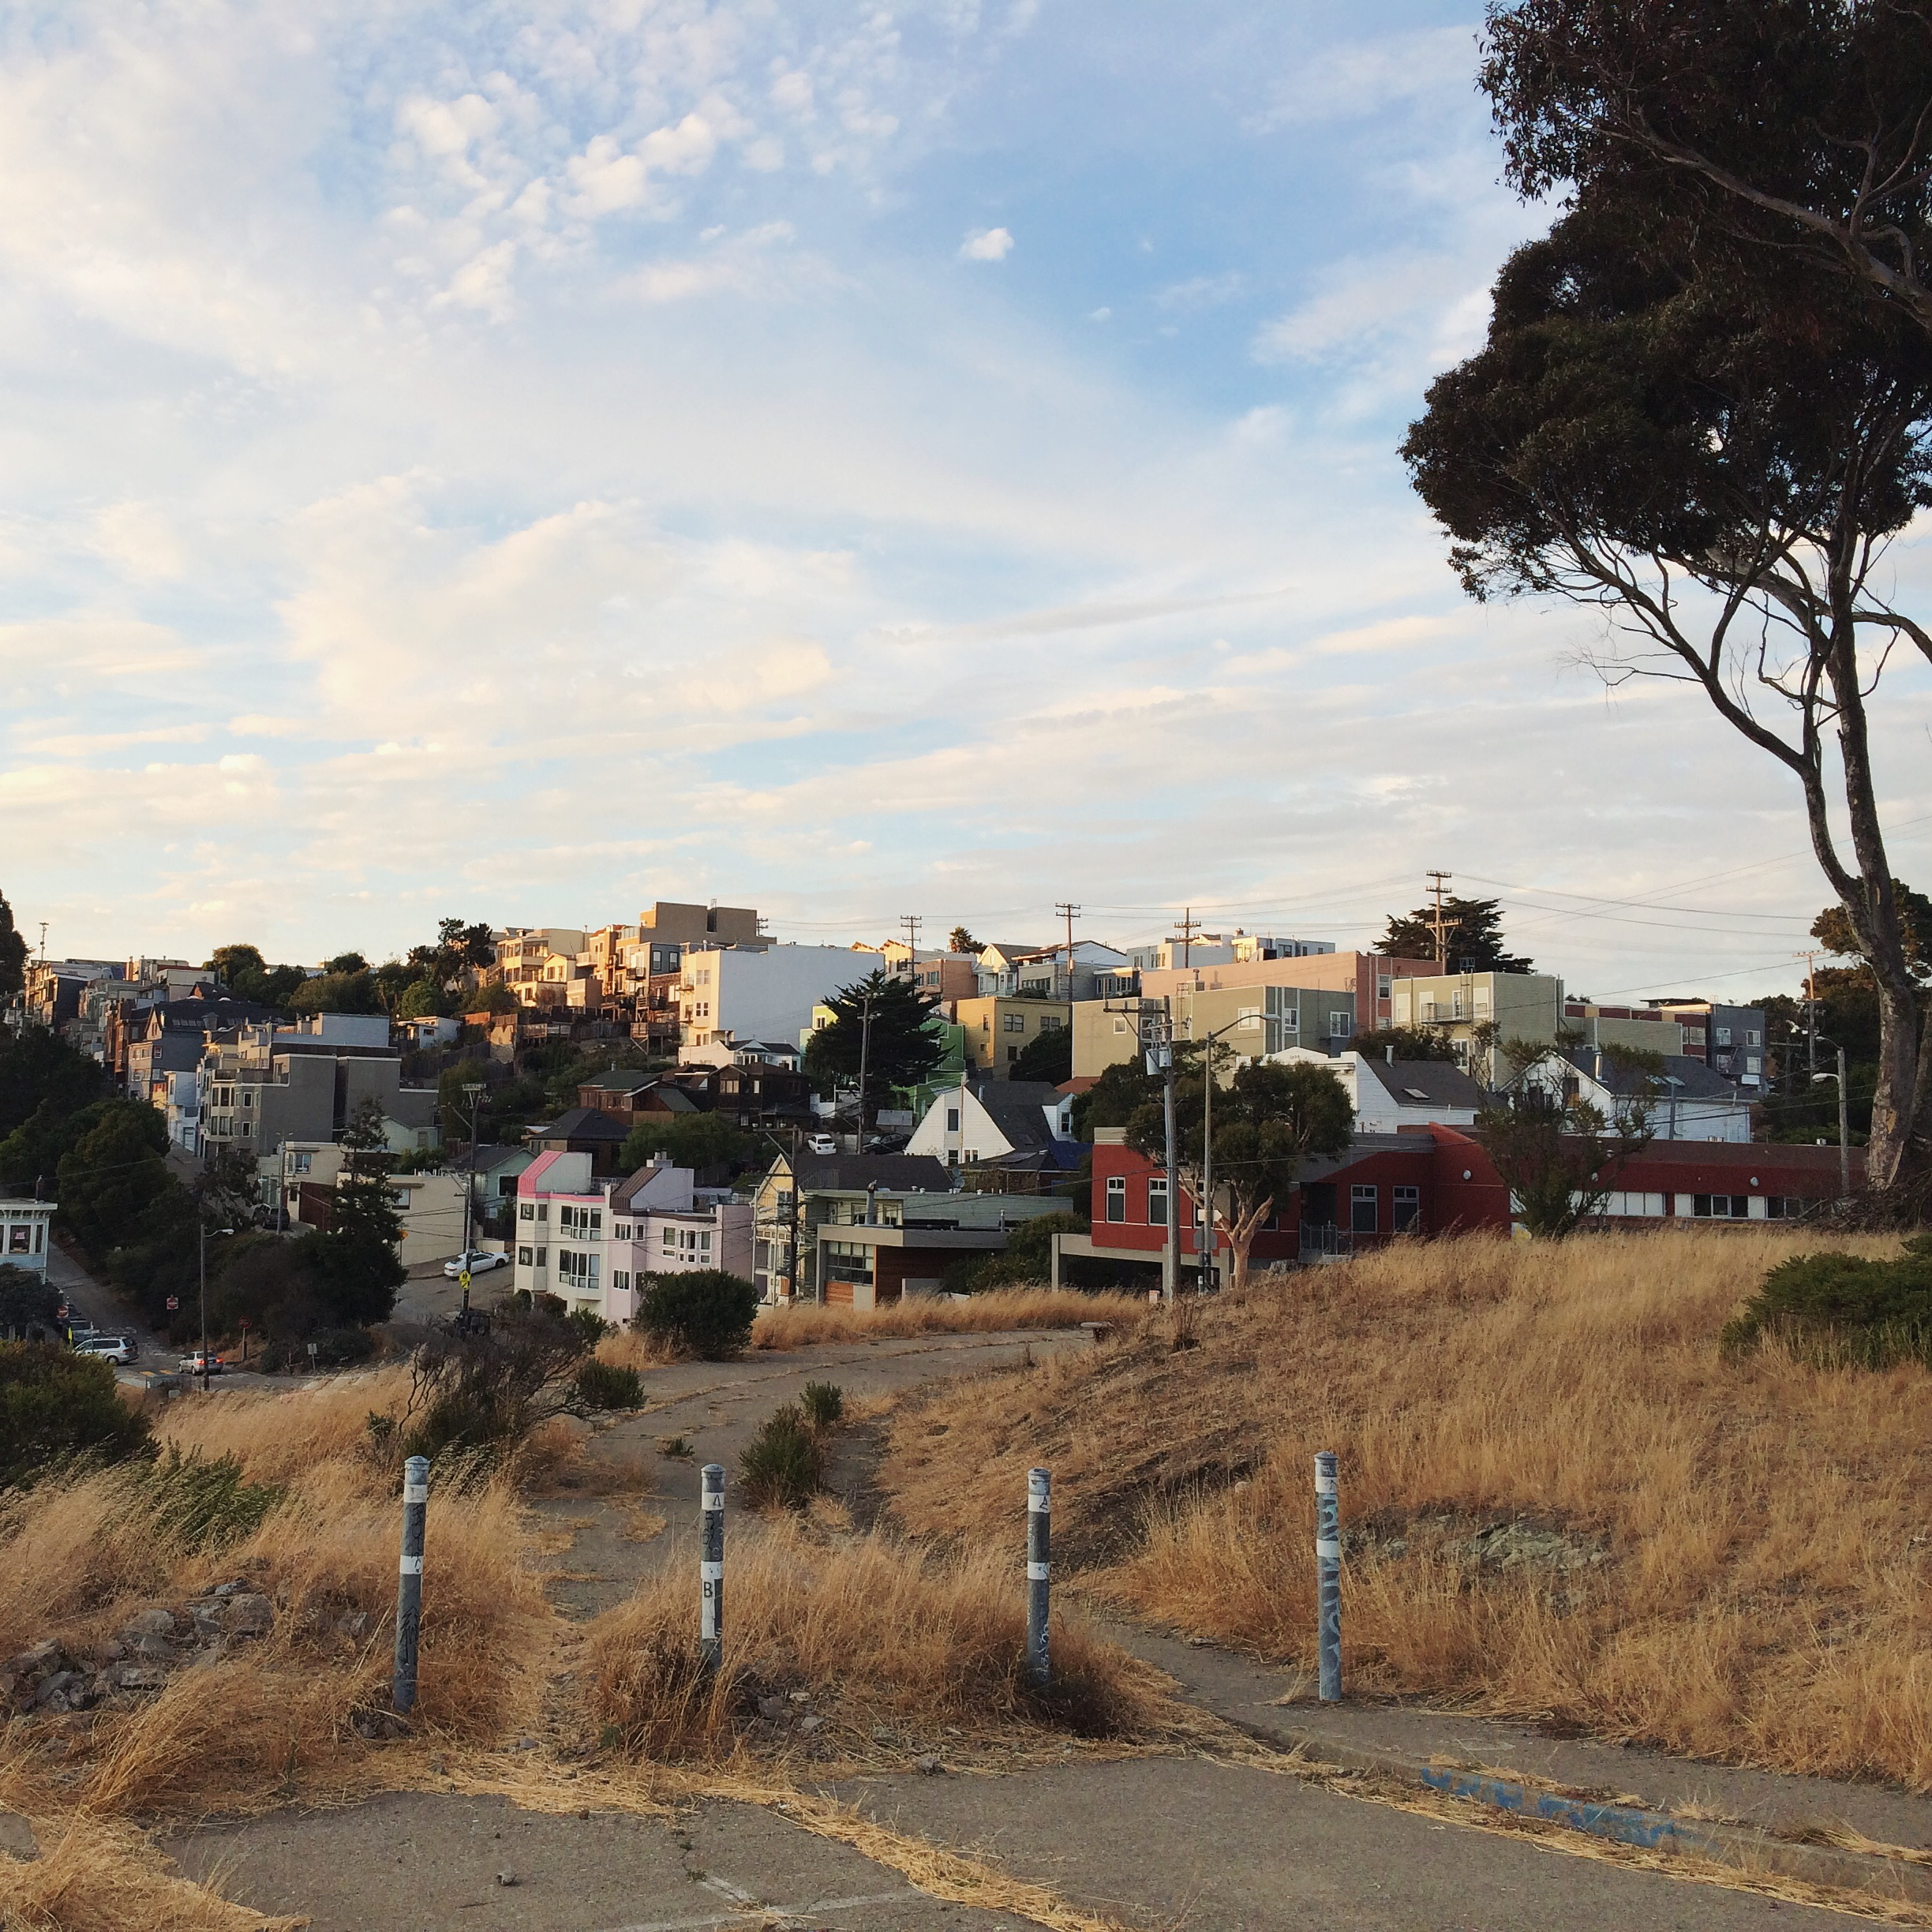 The Starr King Open Space offers views of the hills and the Golden Gate Bridge on a clear day.